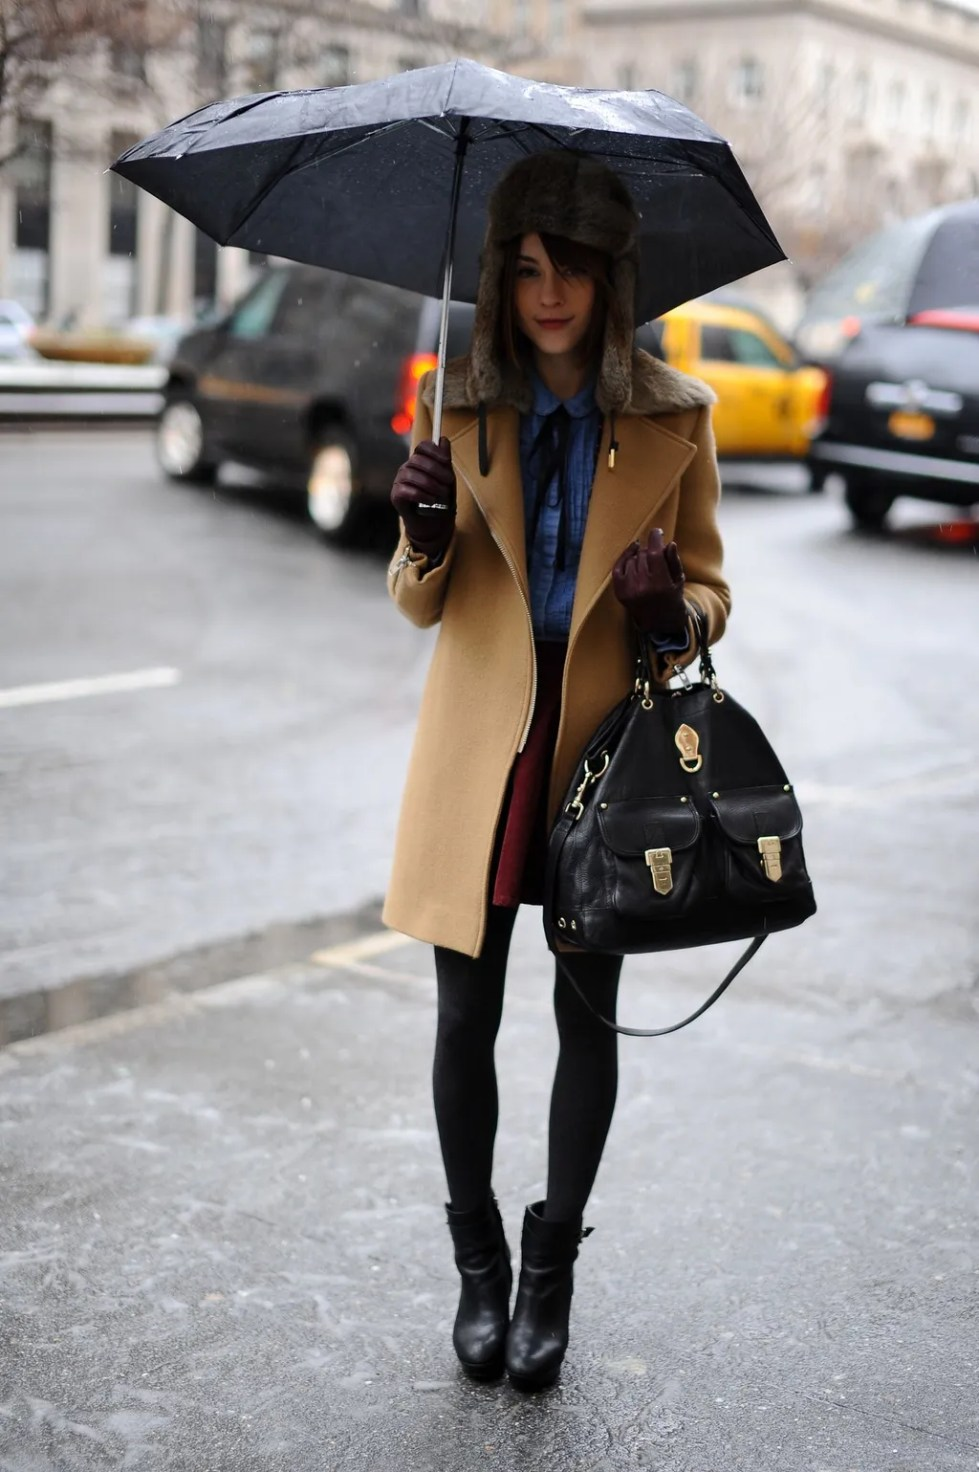 rainy day outfit idea trapper hat